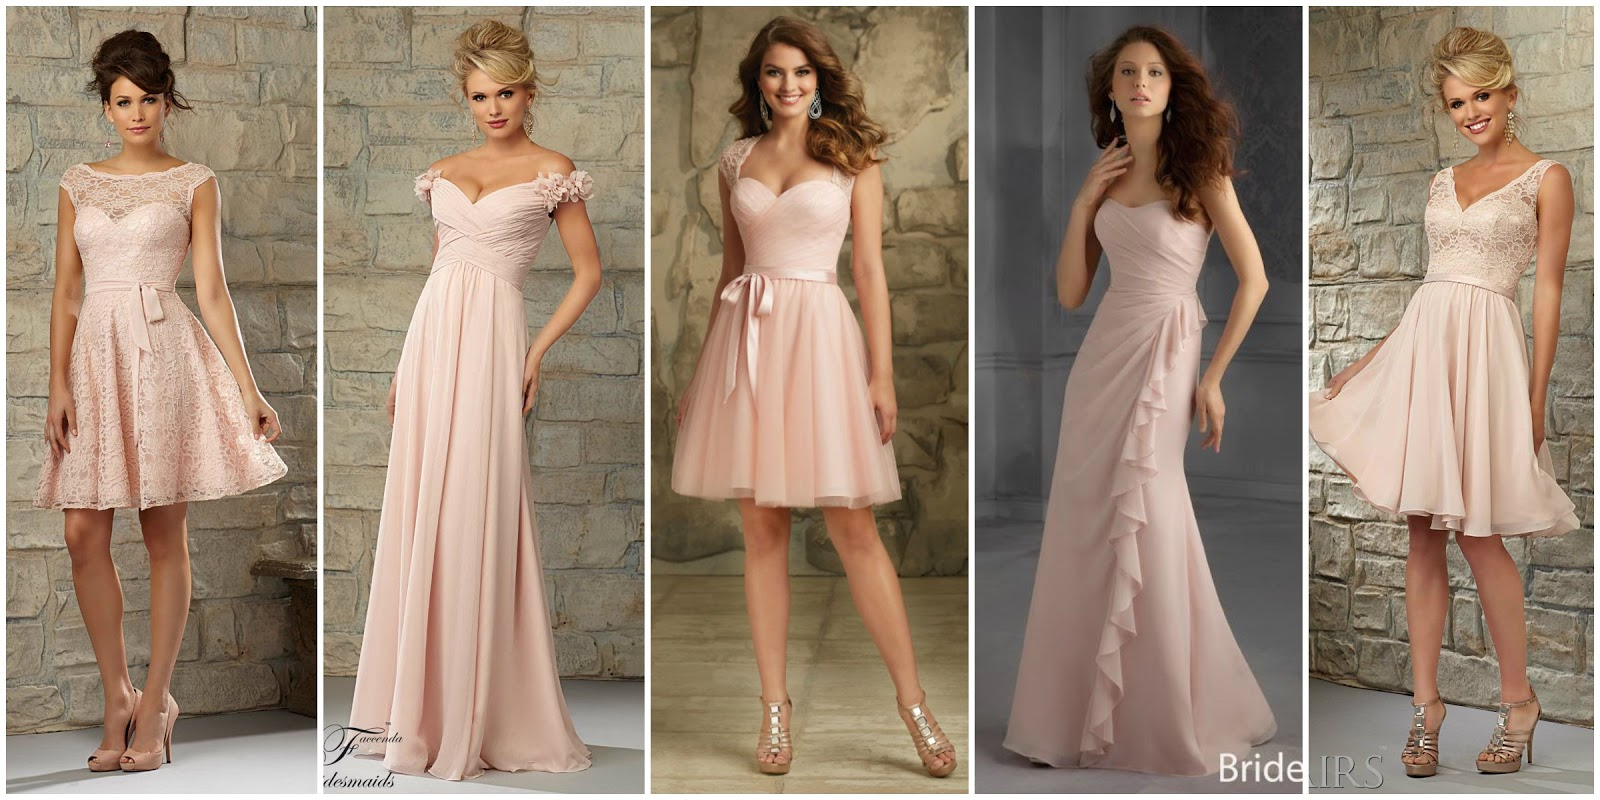 Brides of America Online Store: Bridesmaids Dresses Don't ...